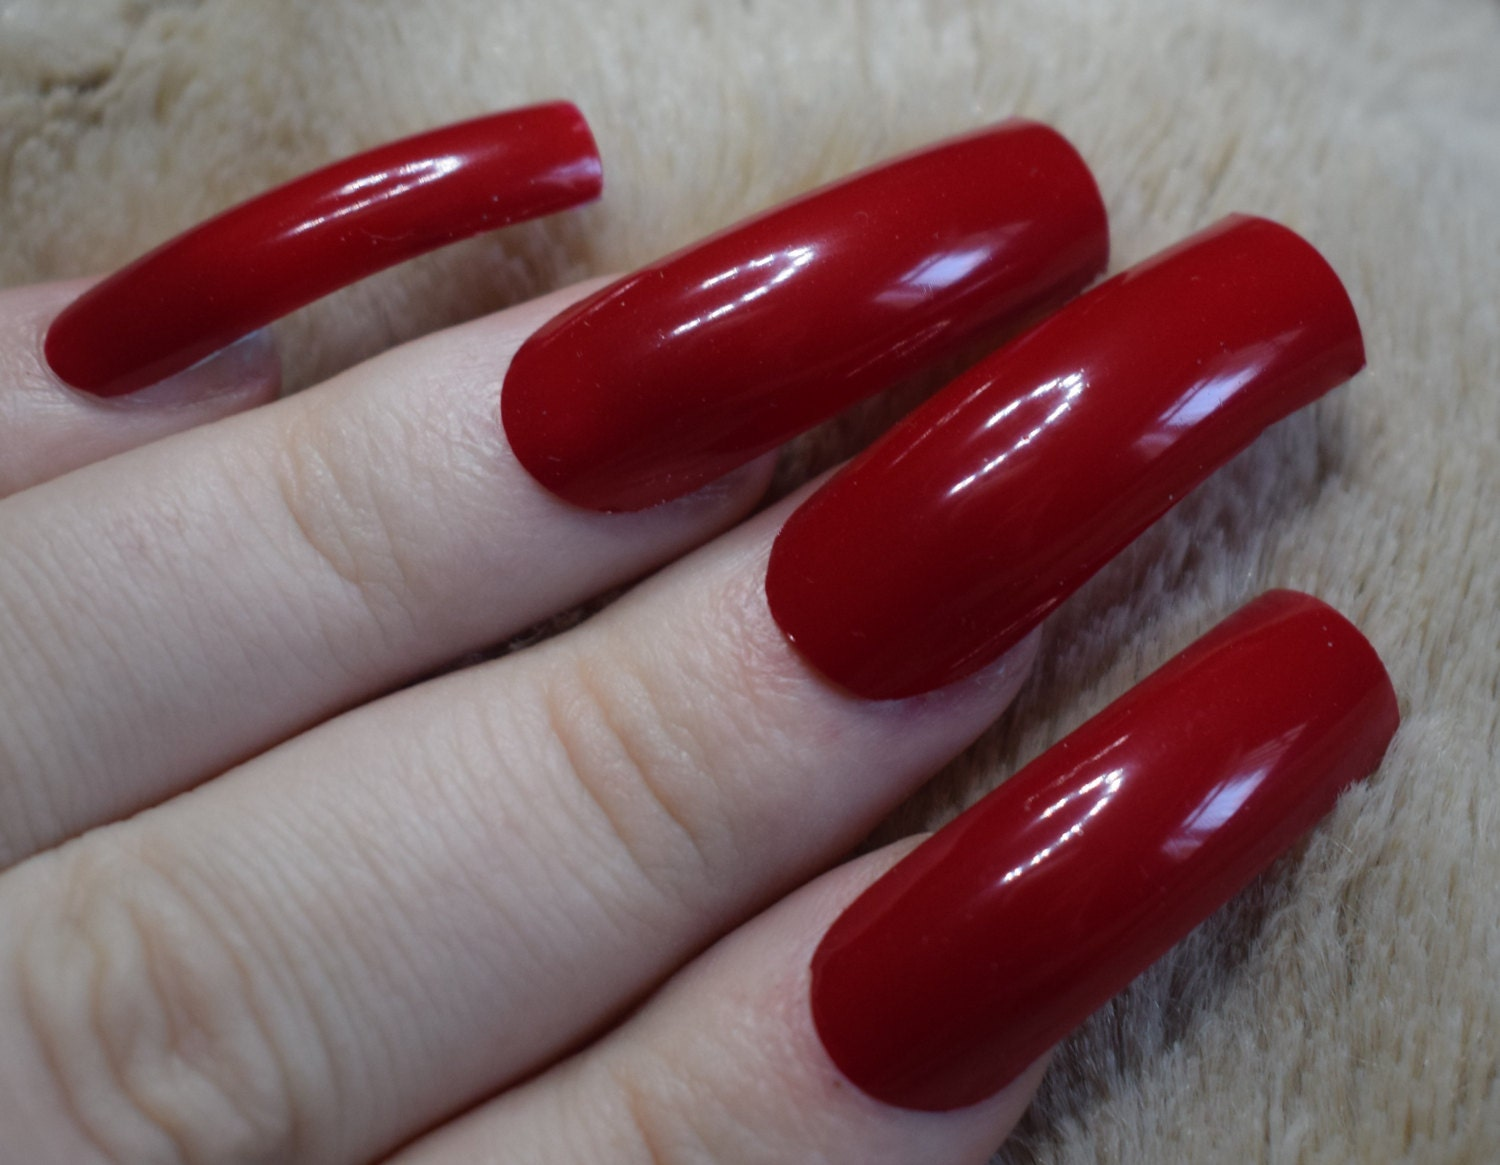 Bright Red Fake Nails, Long Curved False Nails, Hand Painted And ...